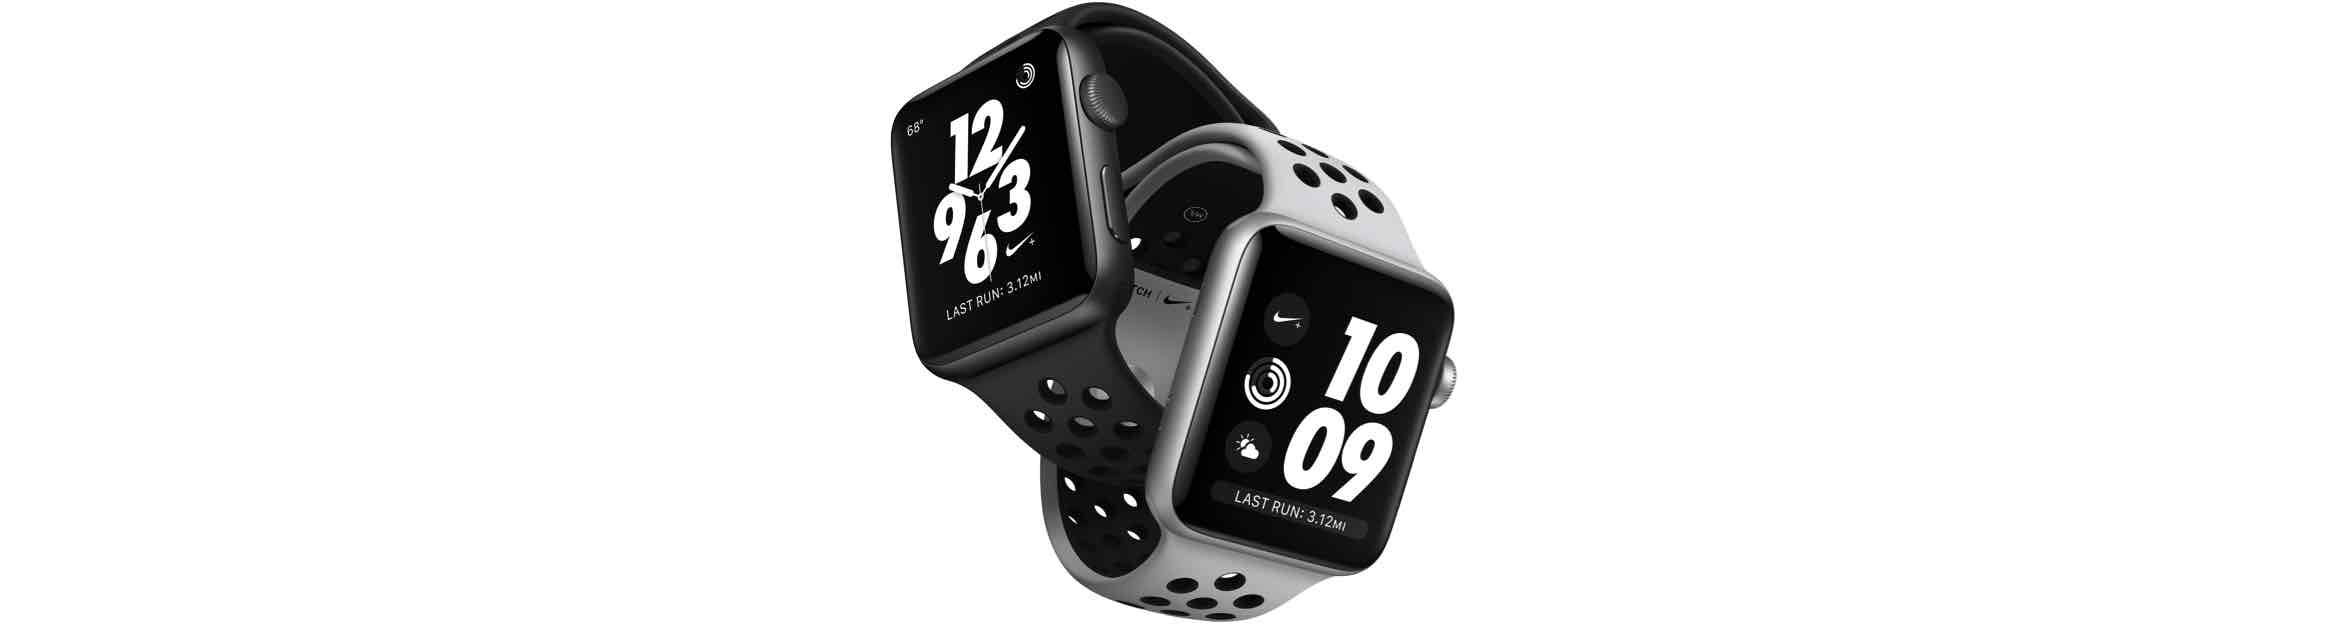 Apple Watch Series 3 Nike+ wijzerplaten